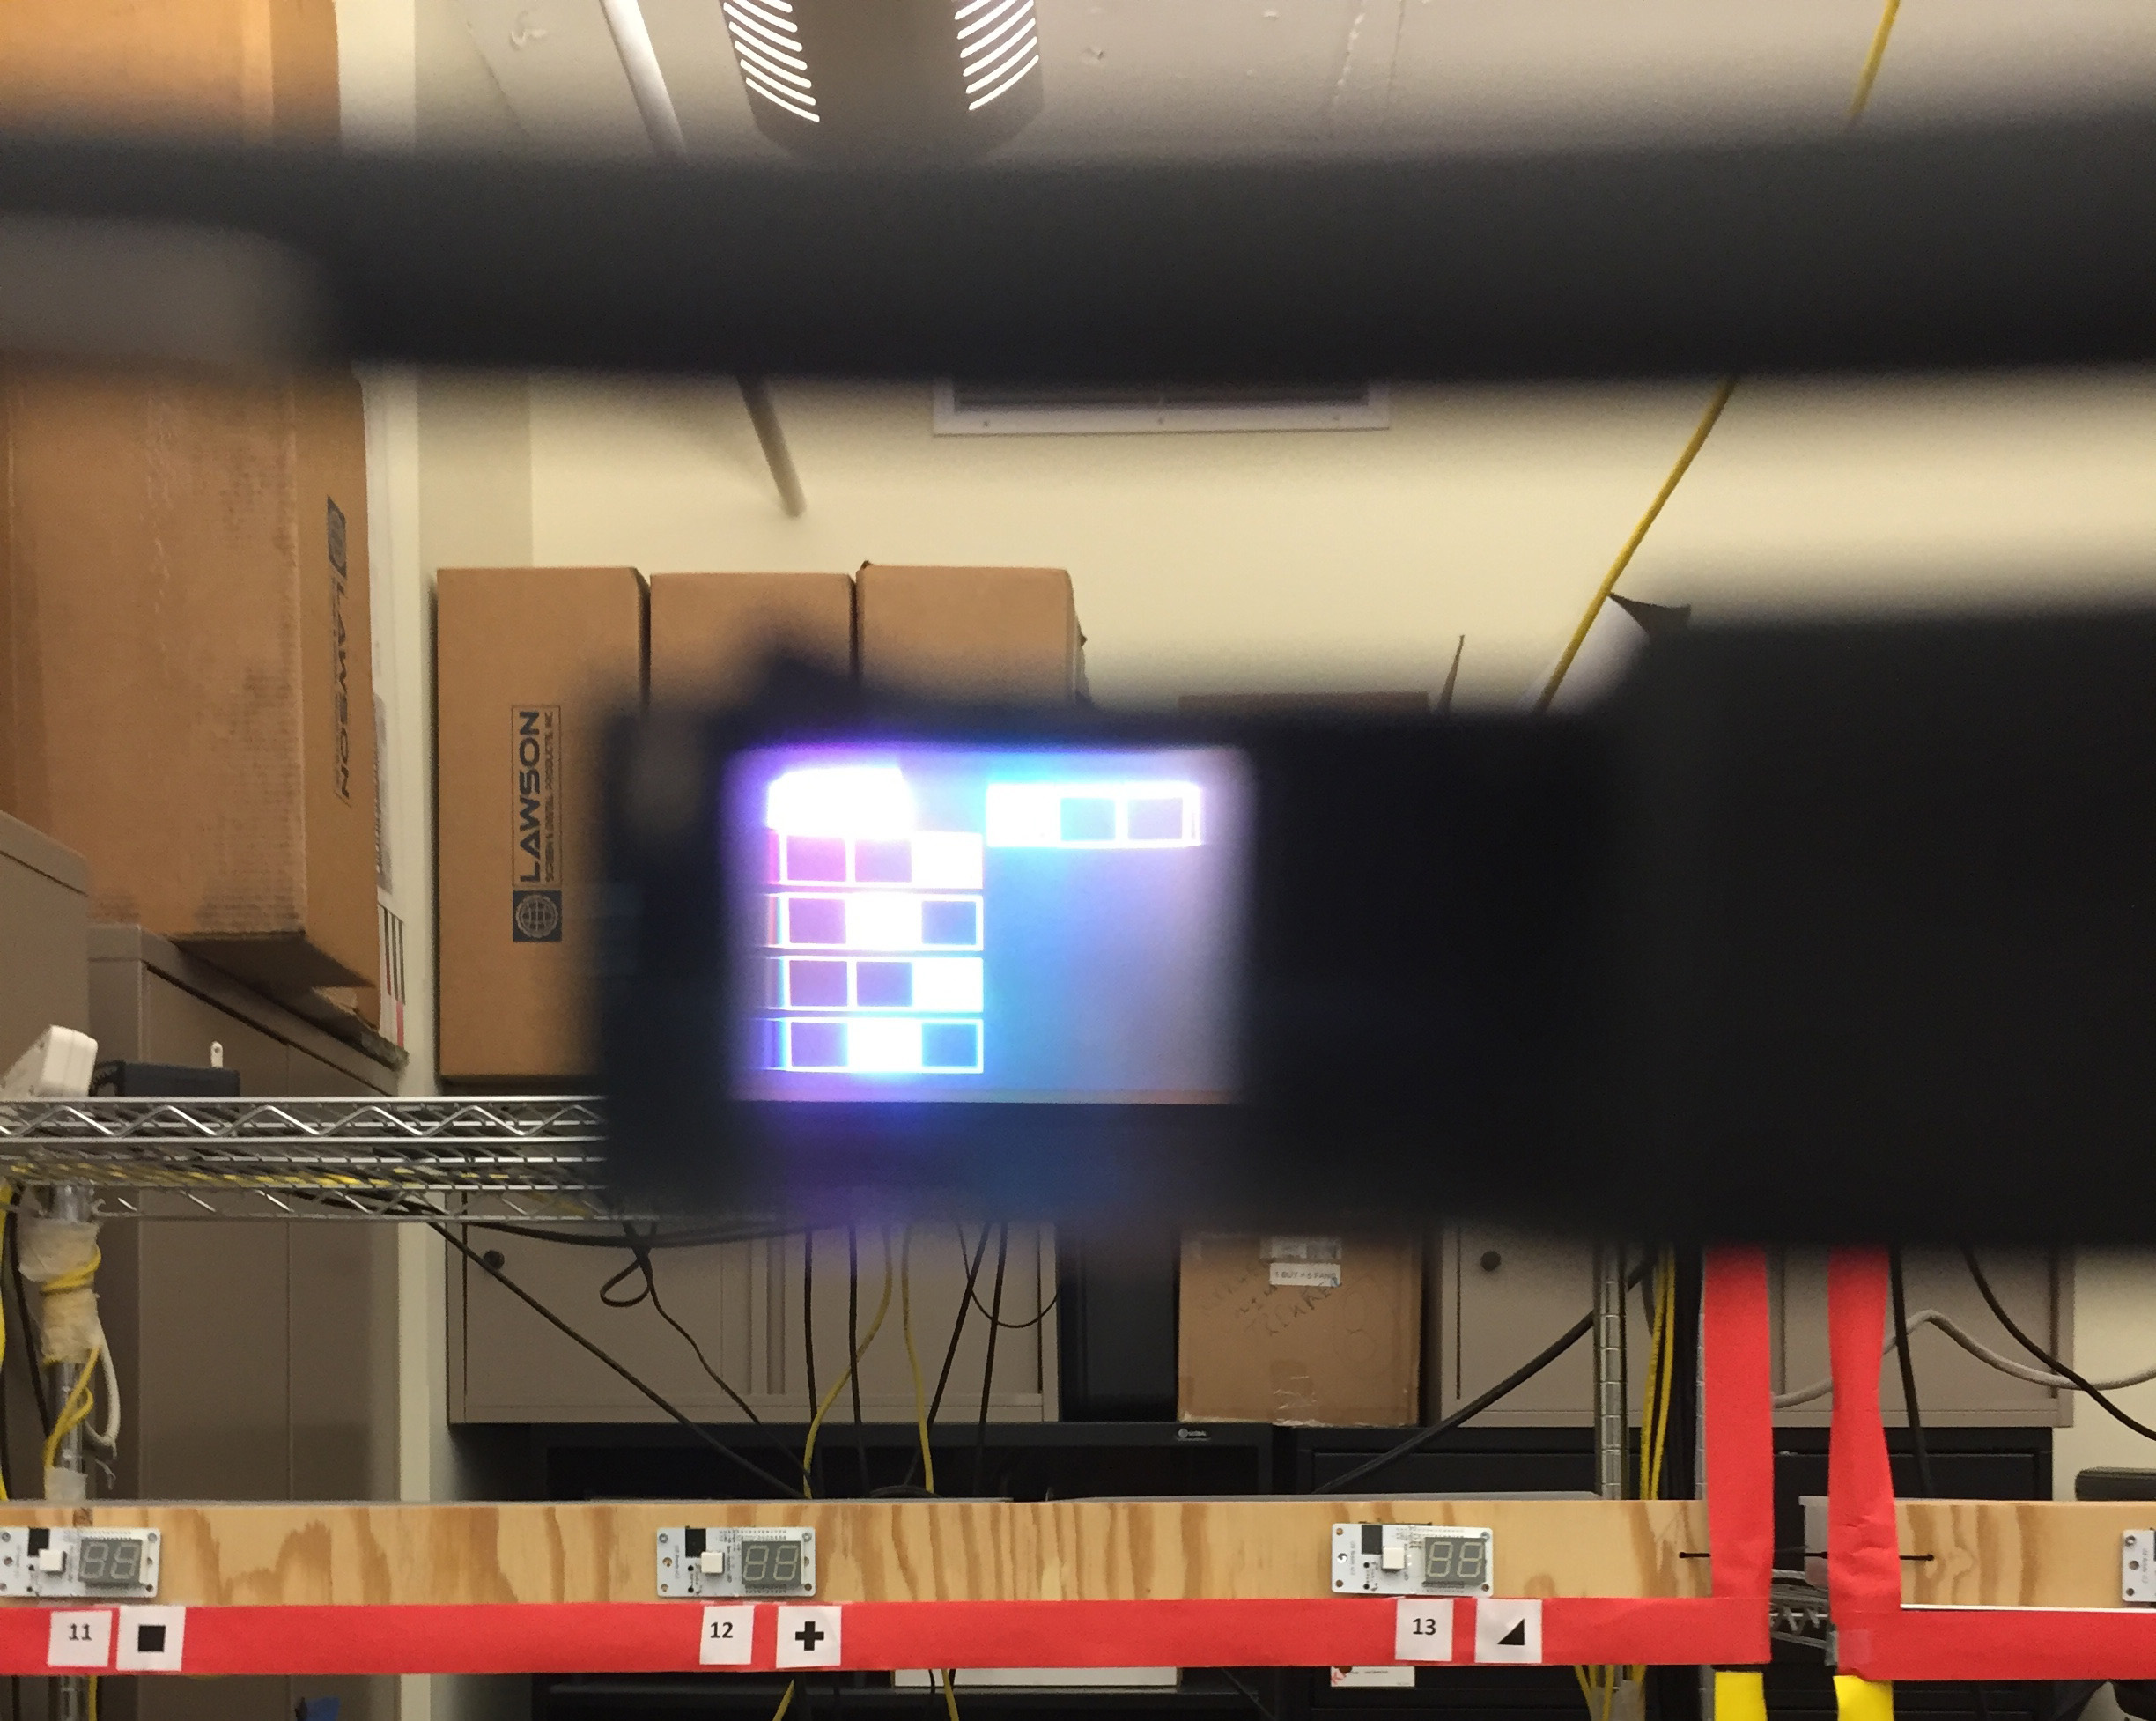 Pick-by-head-up display system using a Google Glass with a opaque display to show the pick order instructions.